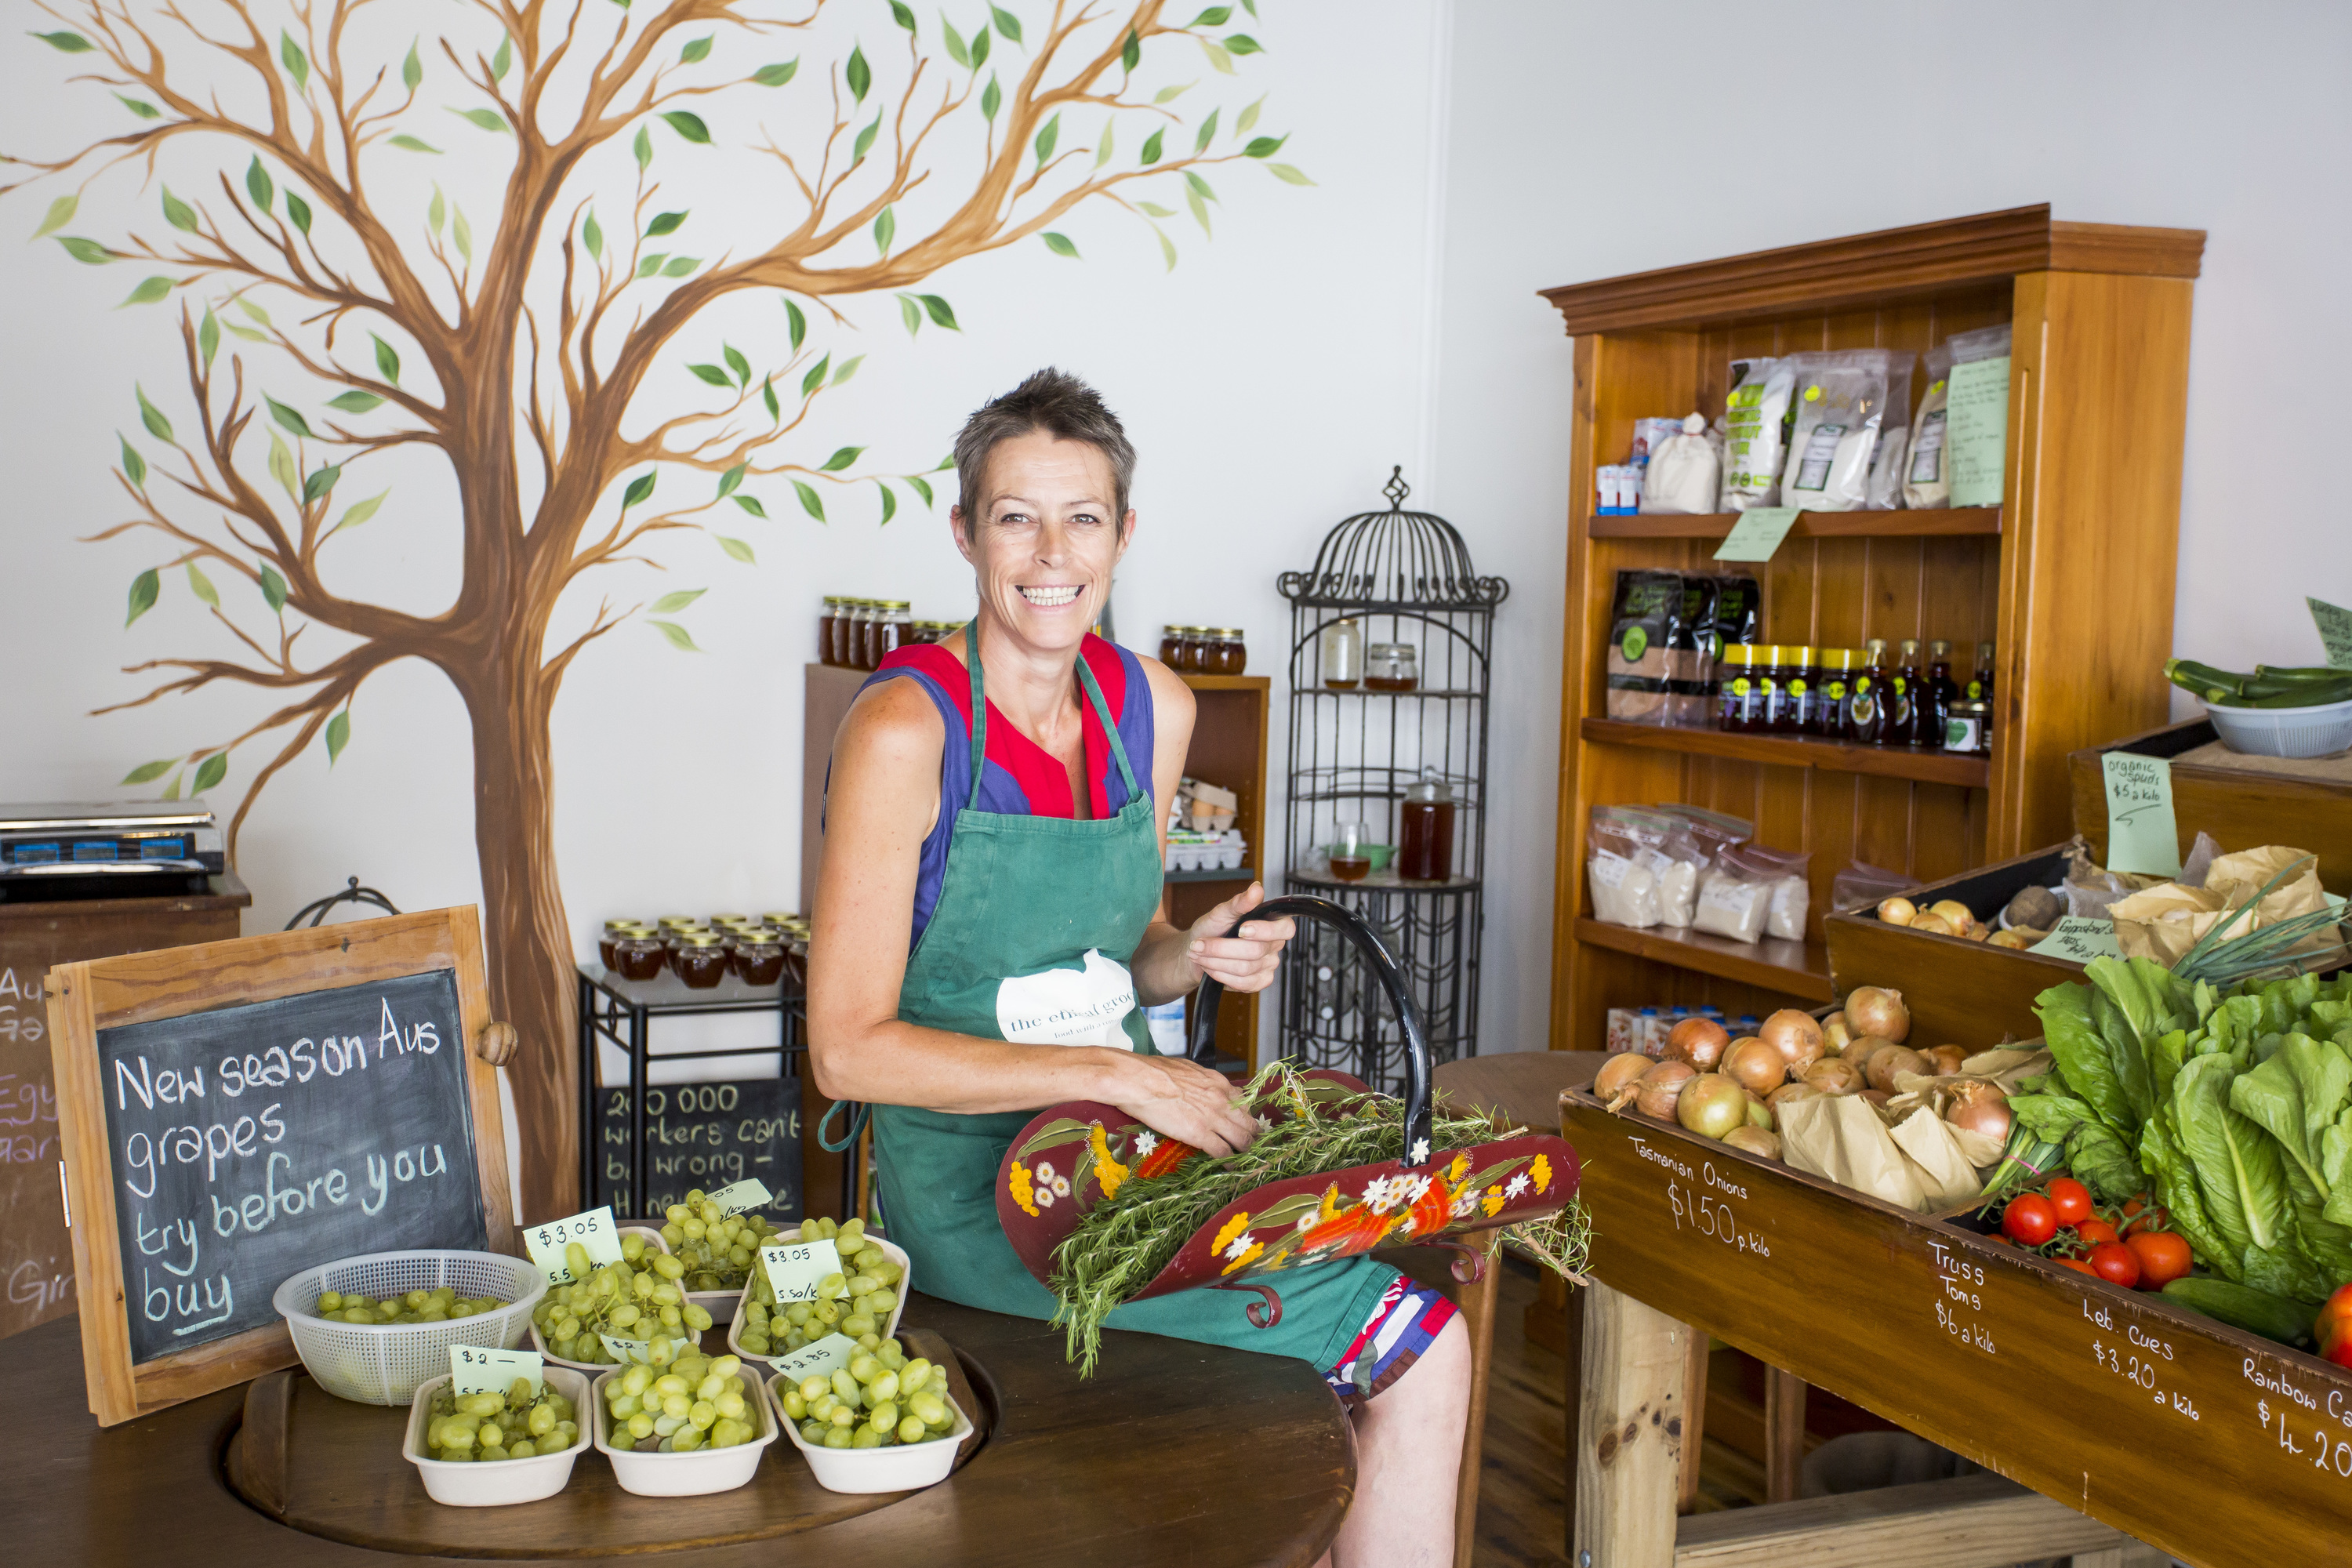 The Ethical Grocer